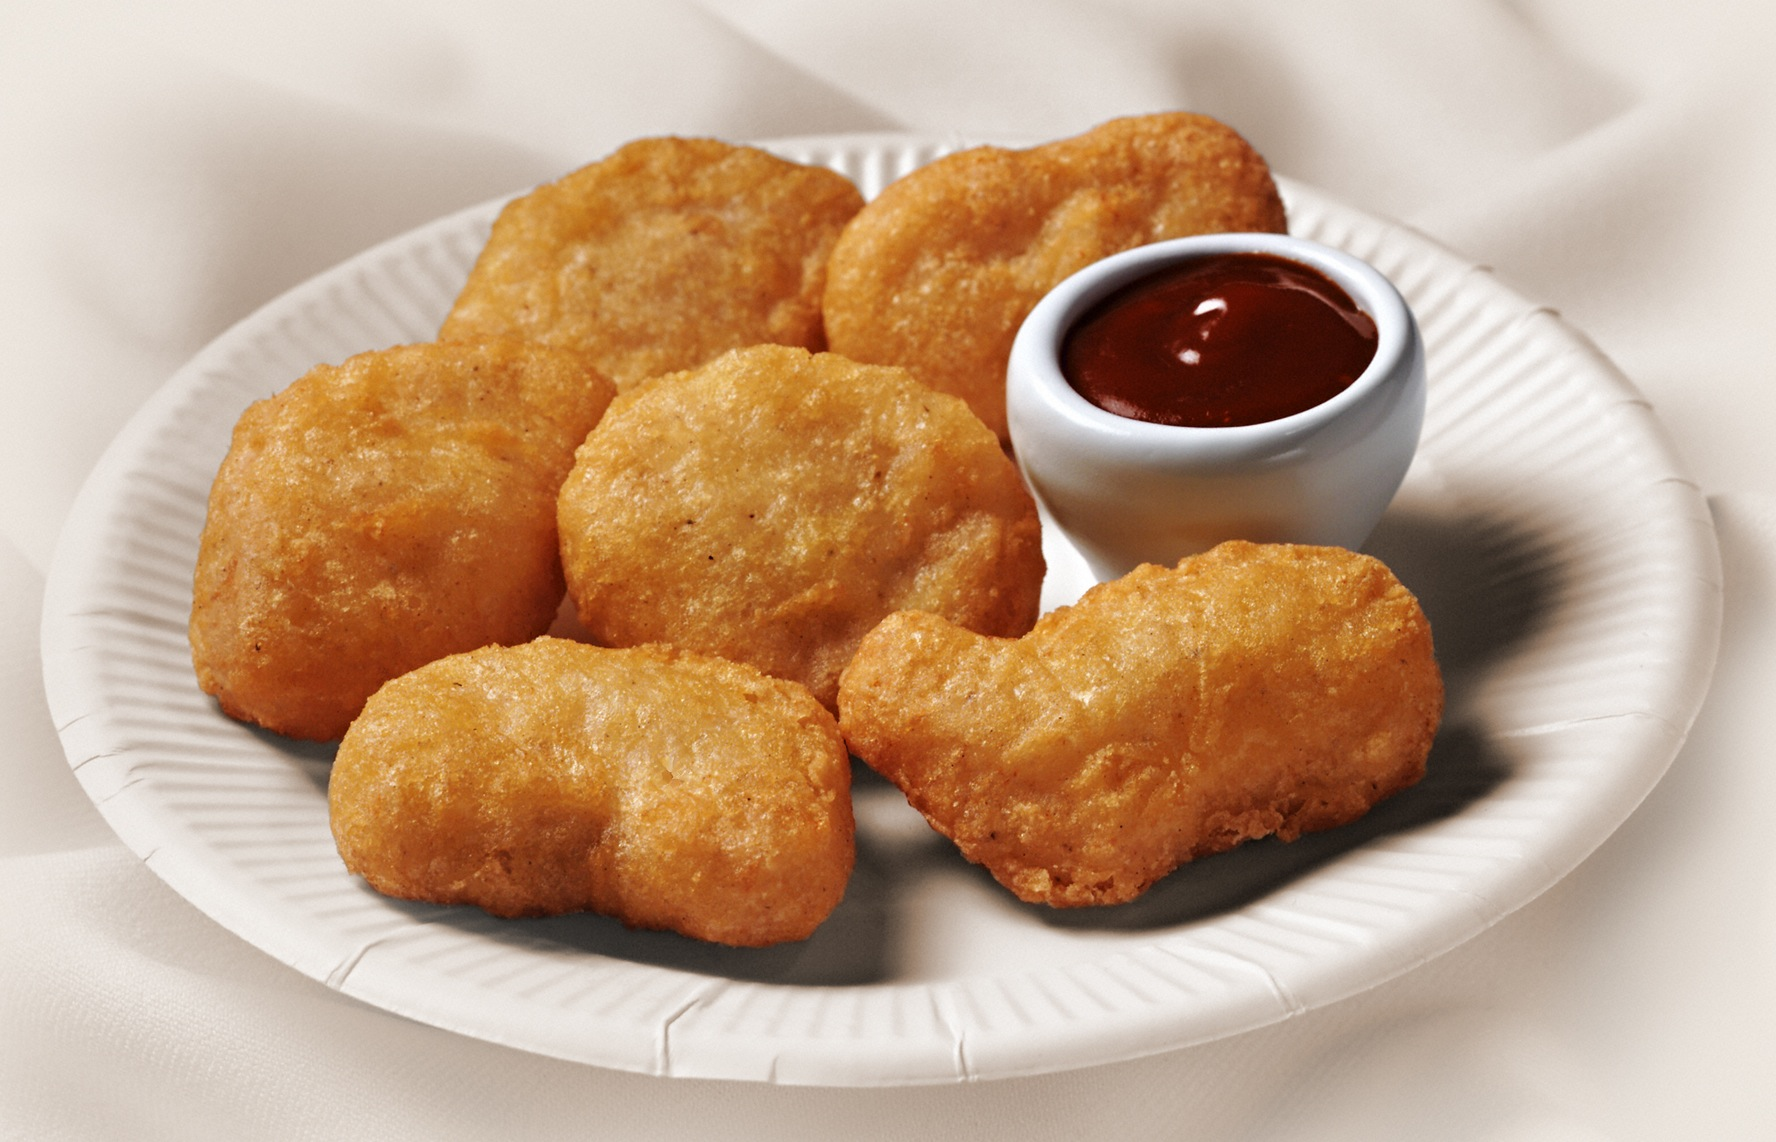 McNuggets come in four official shapes: bell, bone, boot and ball.